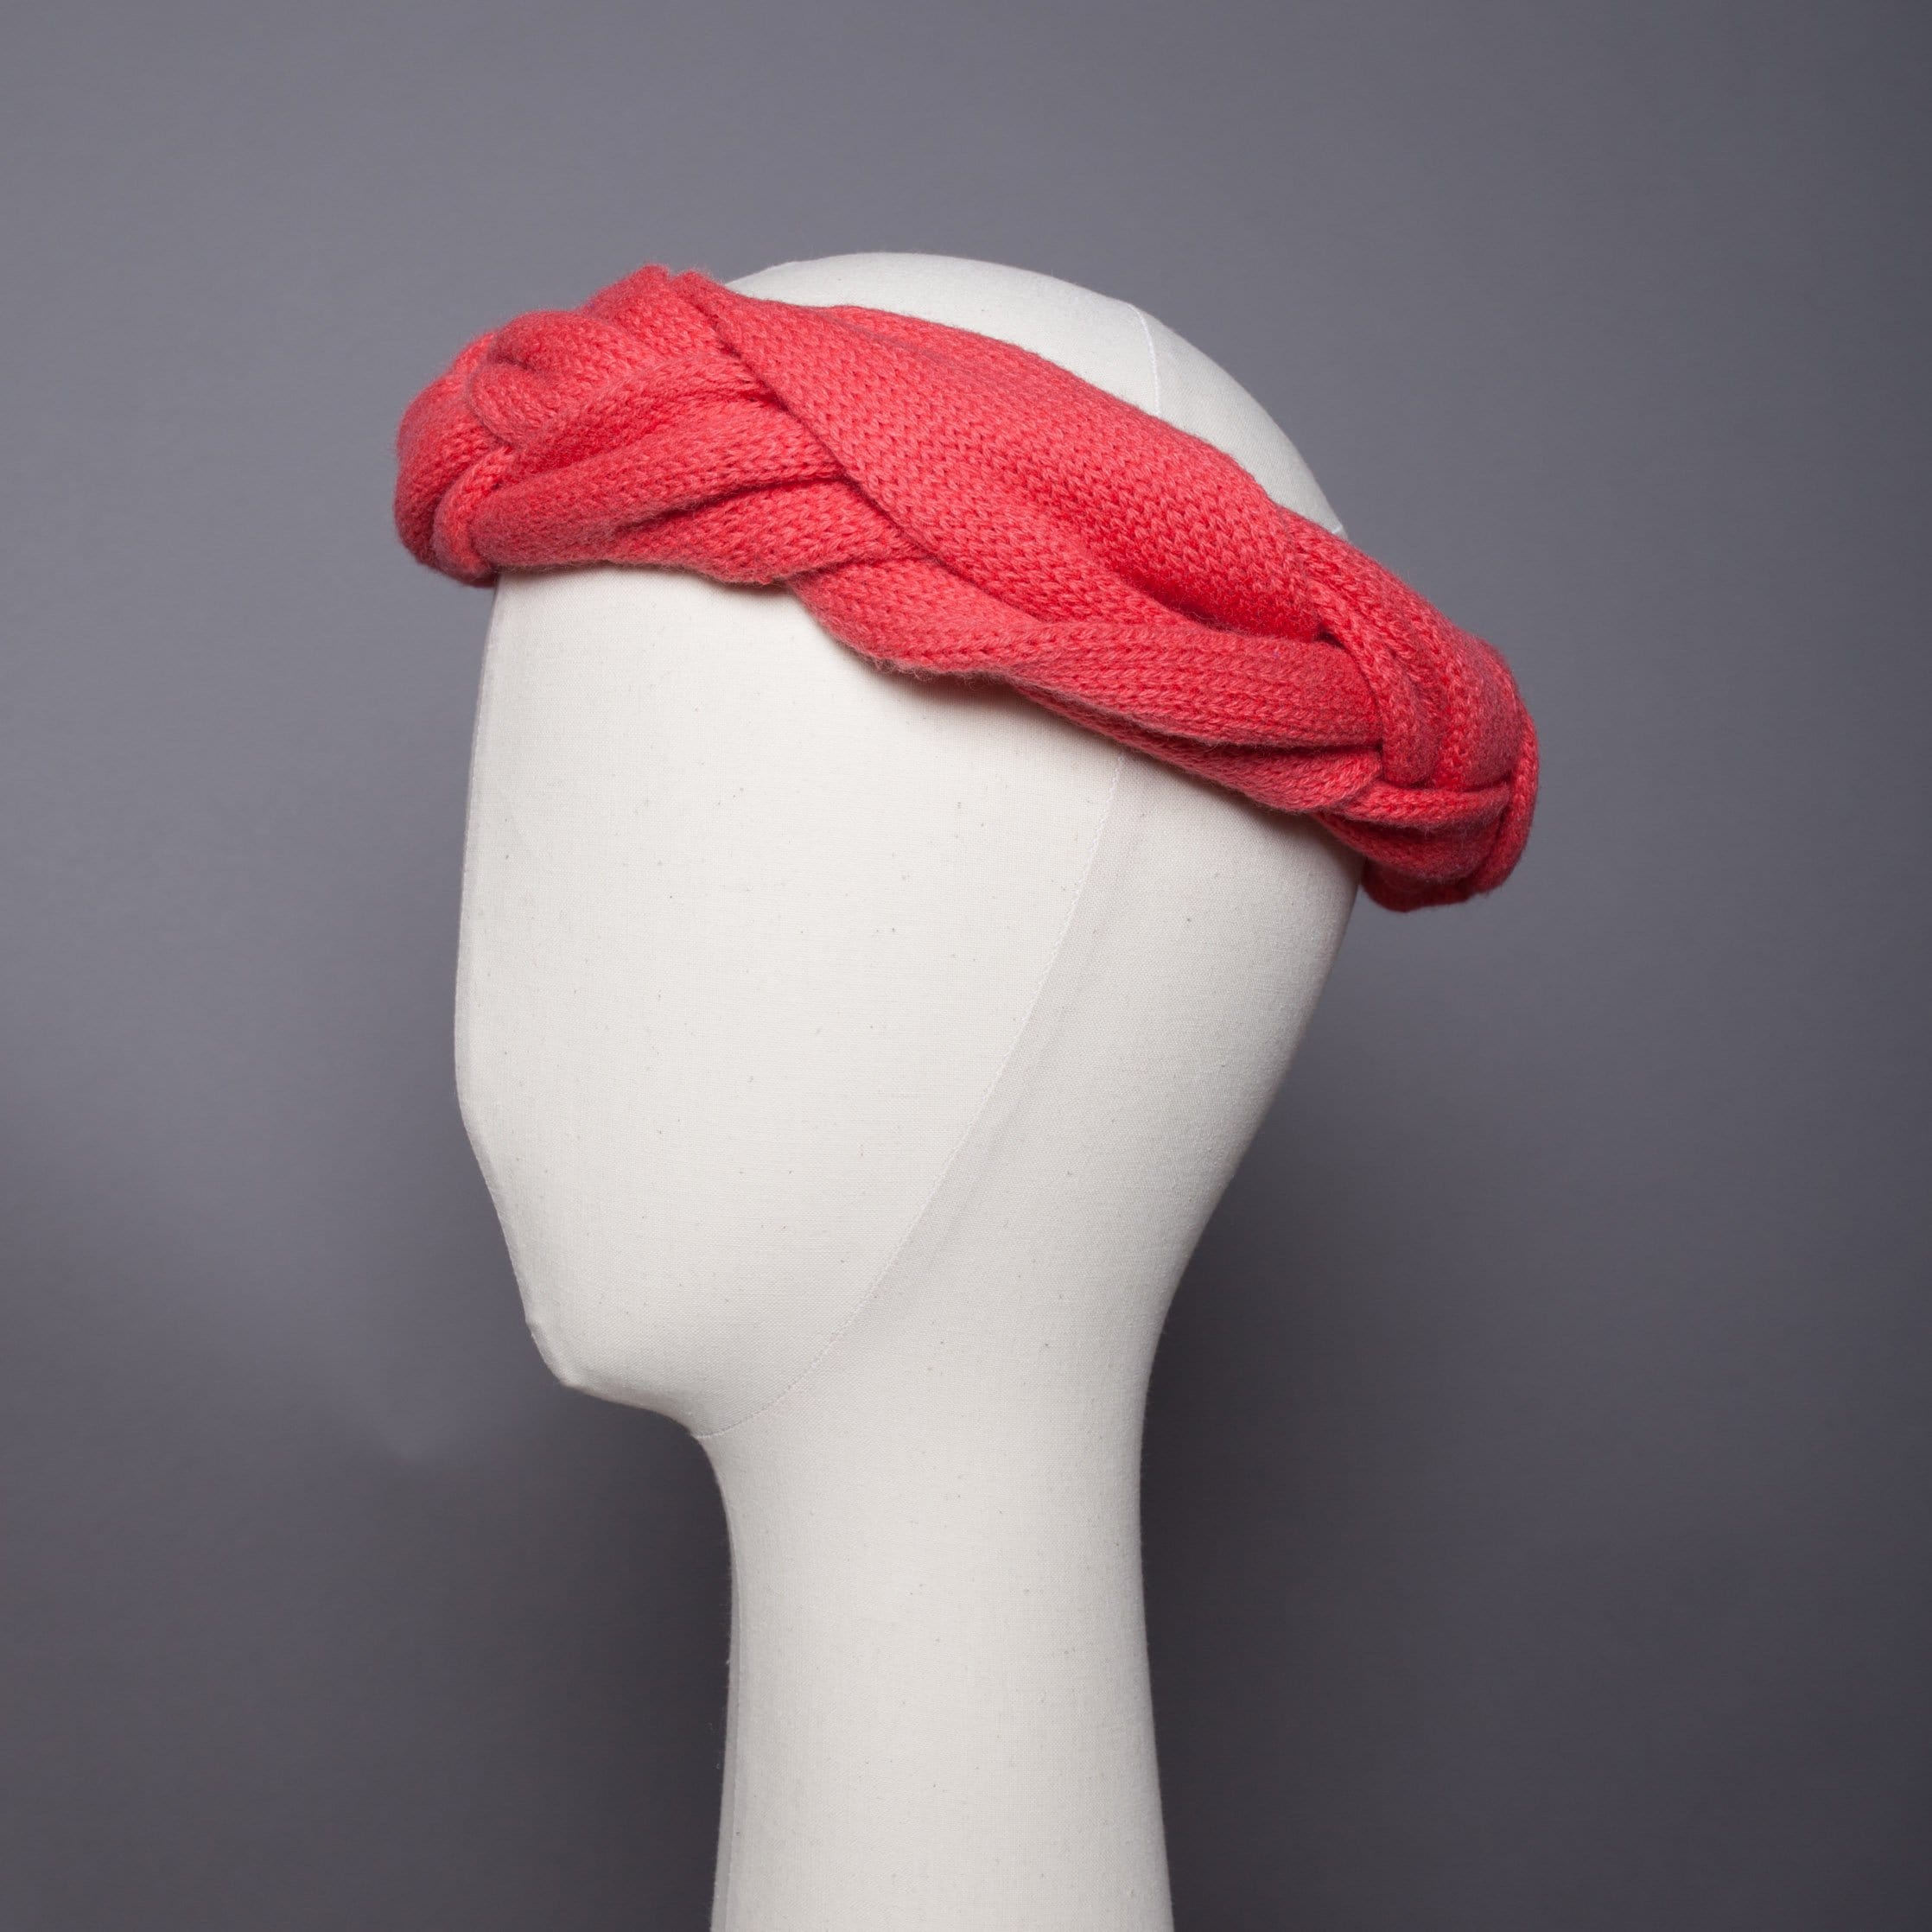 Headband tressé Evesome maille mousseuse 100% cachemire - Braided headband Evesome 100% cashmere frothy mesh